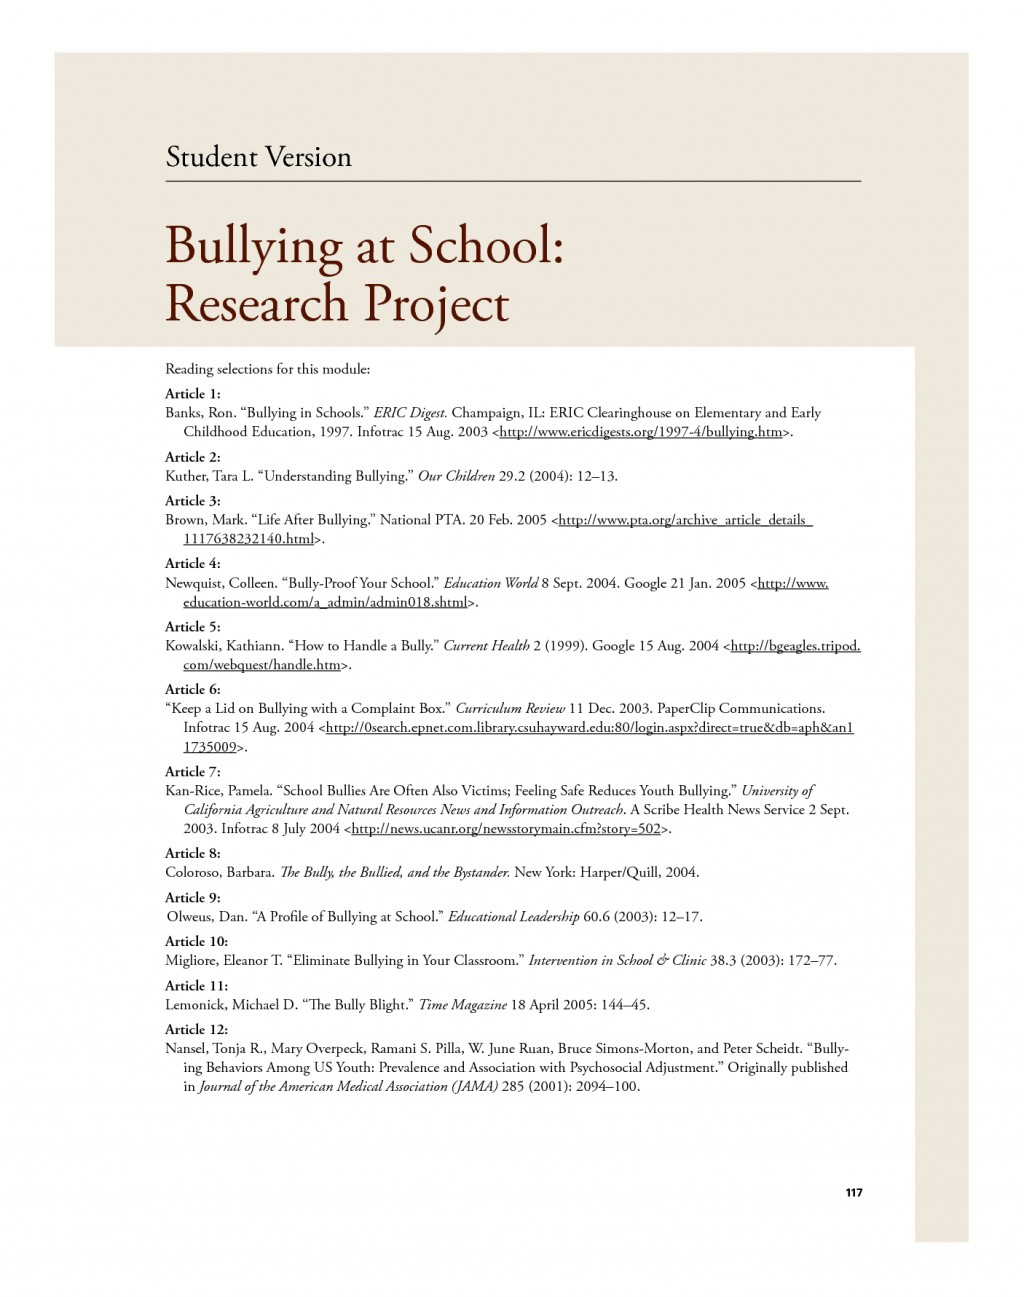 019 Conclusion Bullying Research Paper Violence In20hools Essay Causes20hool Topics Jamaican20 Dreaded Large